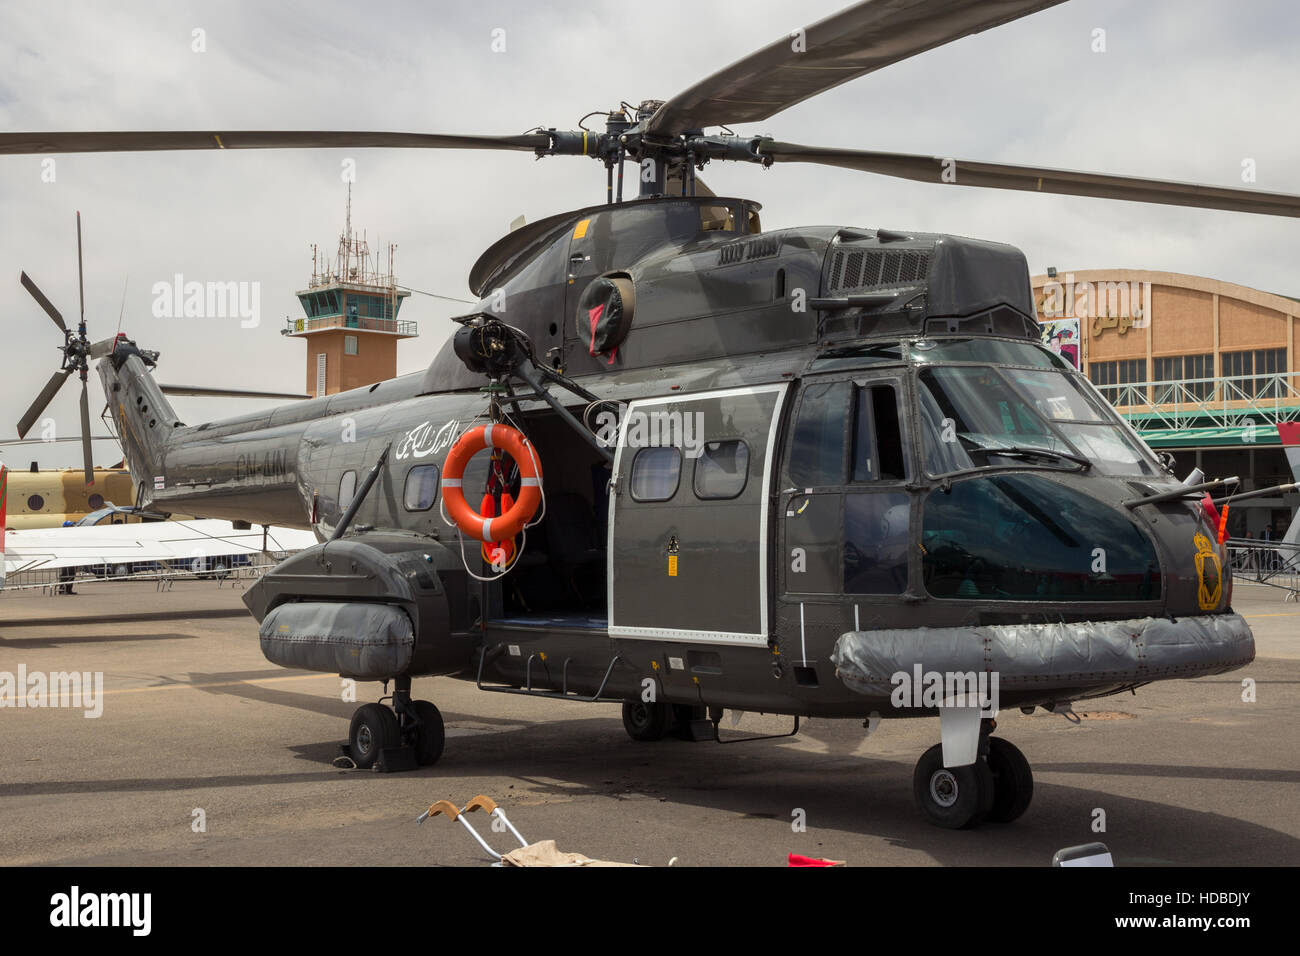 Royal Moroccan Gendarmerie Aérospatiale SA-330H Puma helicopter on display at the Marrakesh Air Show 2016 - Stock Image